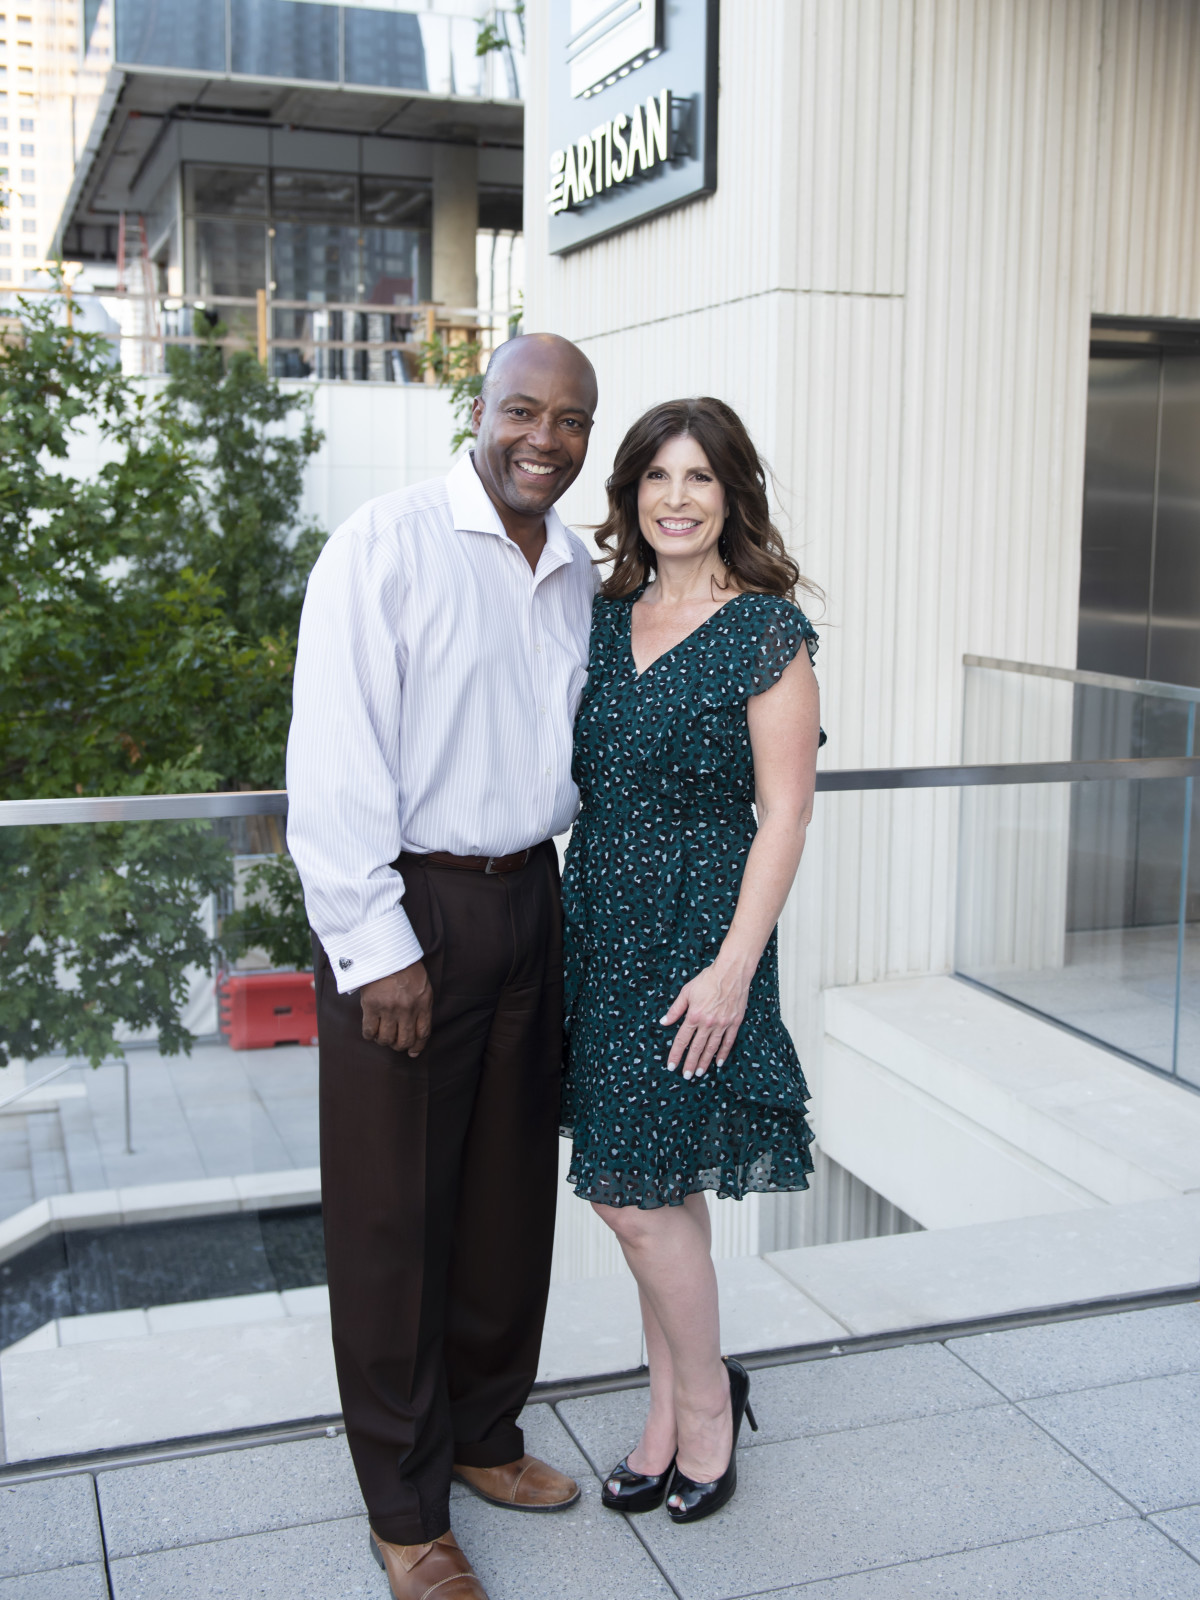 Darryl Jett and Jennifer Wasserman